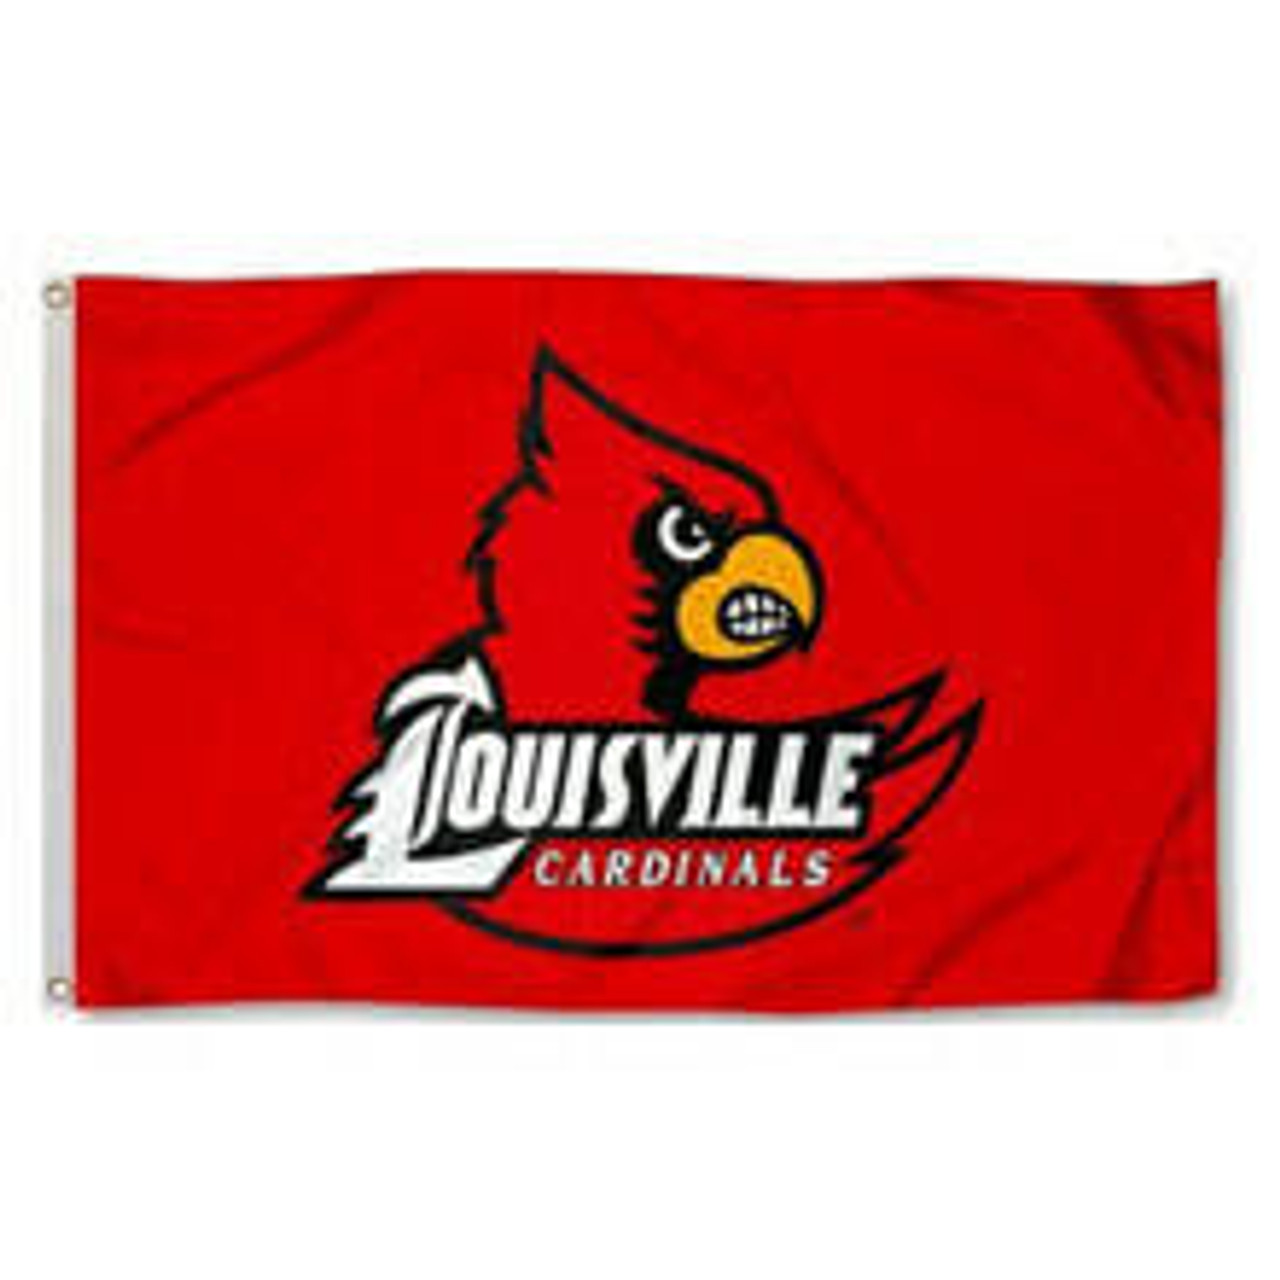 A red flag with a cardinal mascot of Louisville University with the text Louisville Cardinals written in white on its wing.